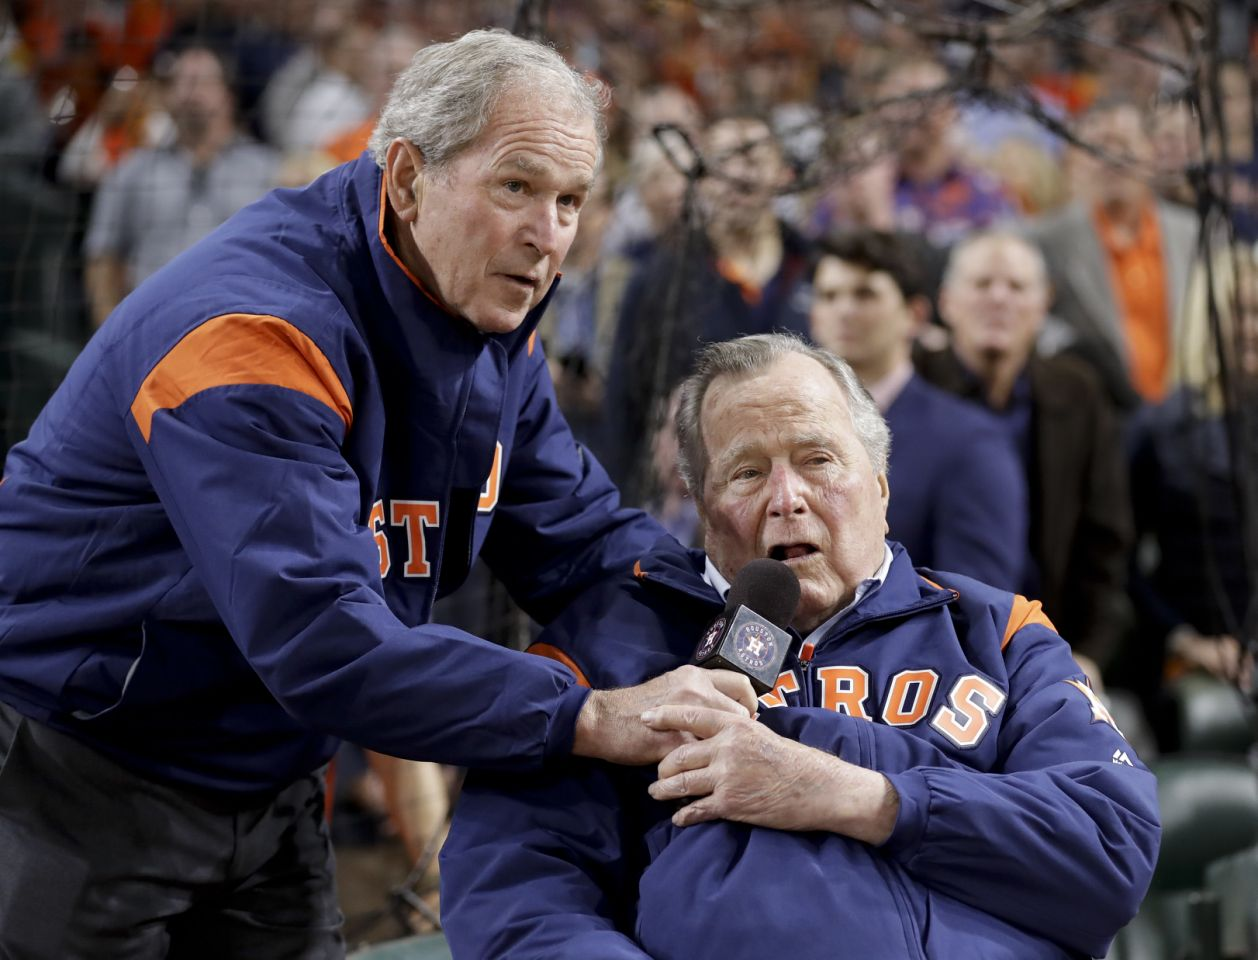 "George H.W. Bush announced ""Let's play ball"" to the crowd as his son stood behind him smiling."